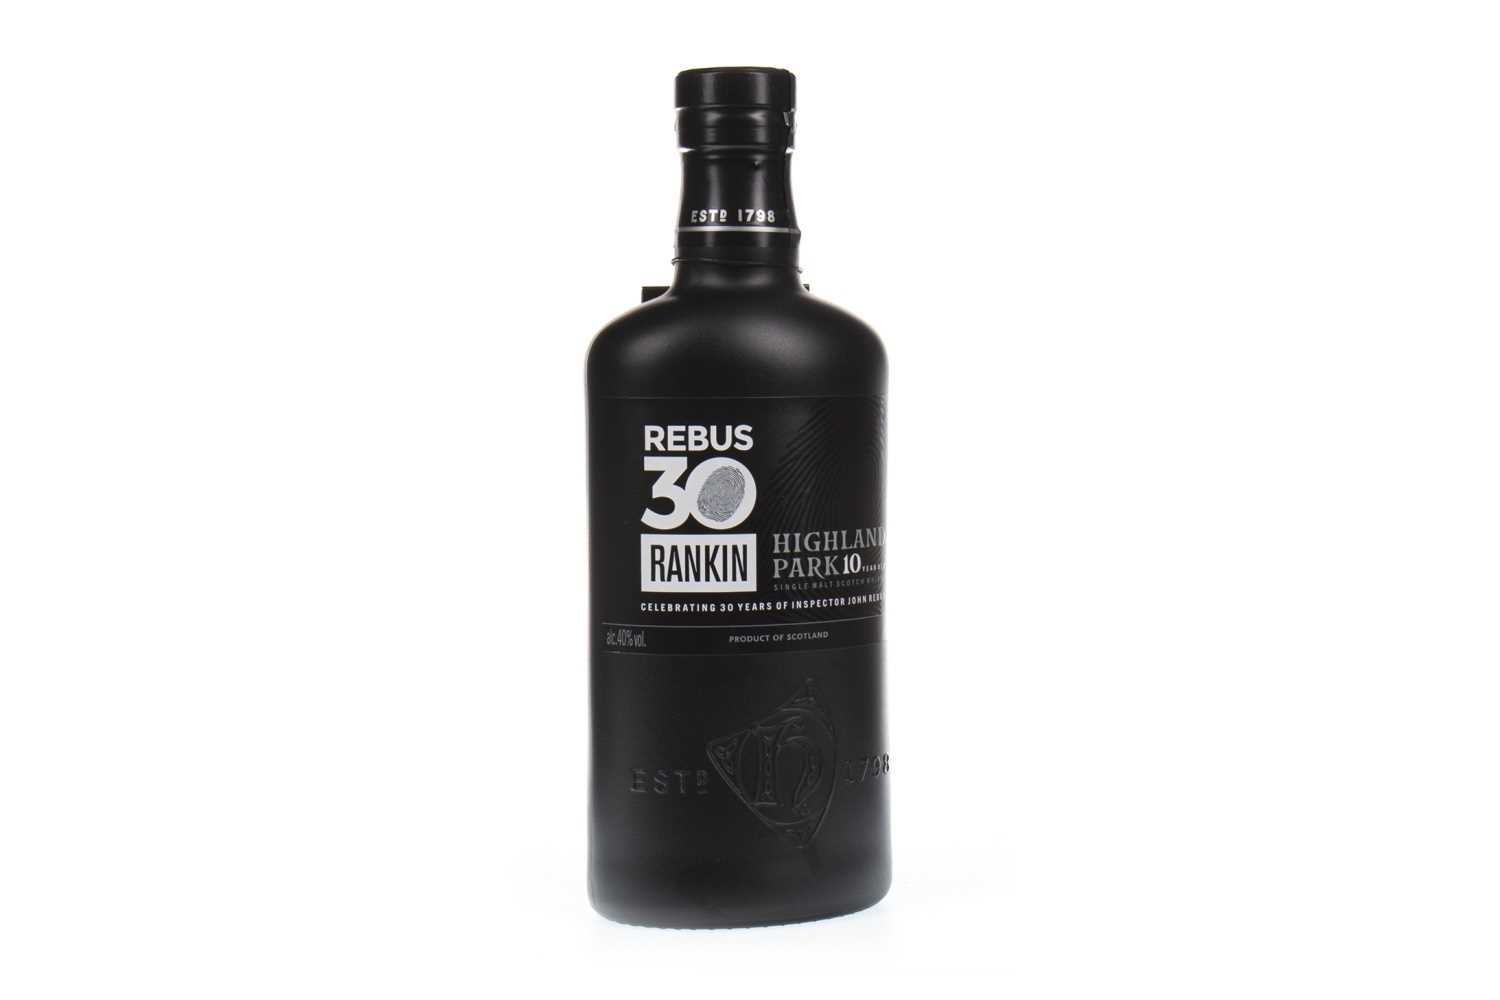 Lot 322-HIGHLAND PARK REBUS 10 YEARS OLD